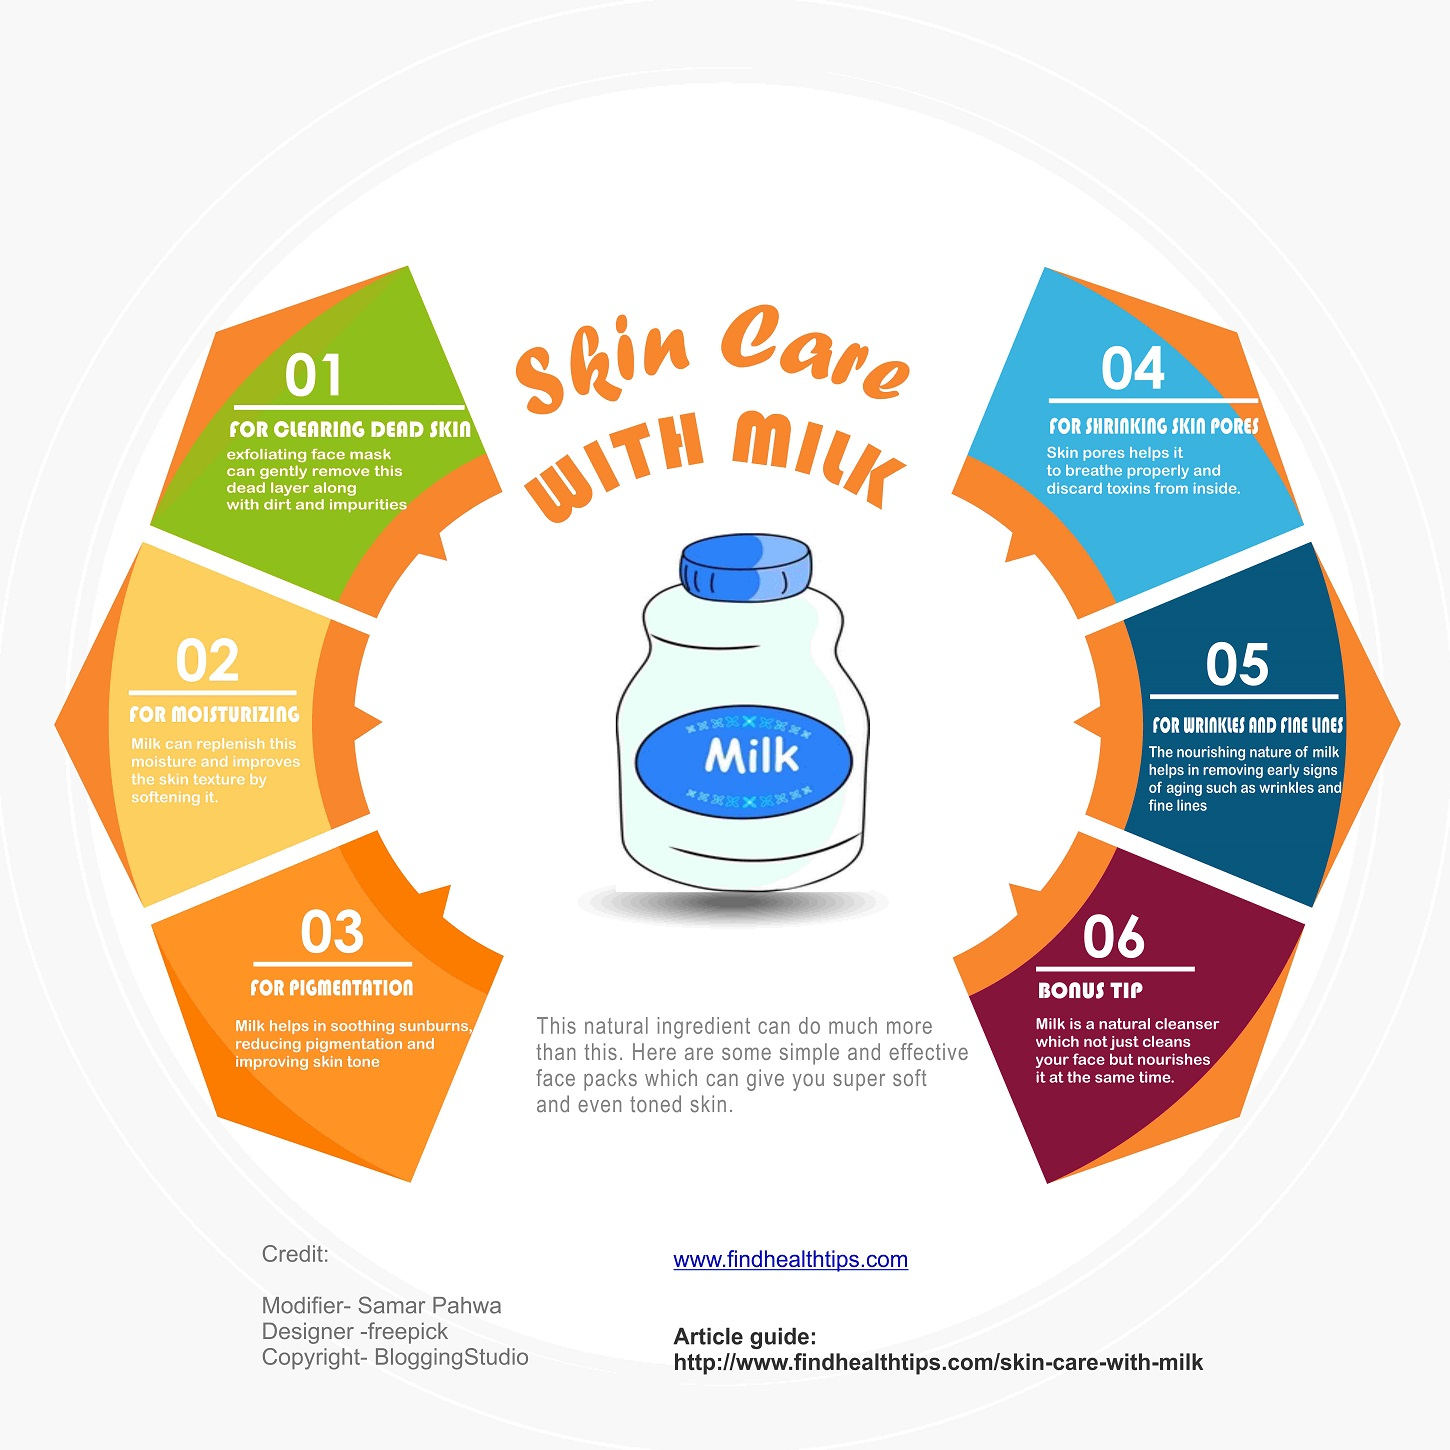 Skin Care with Milk